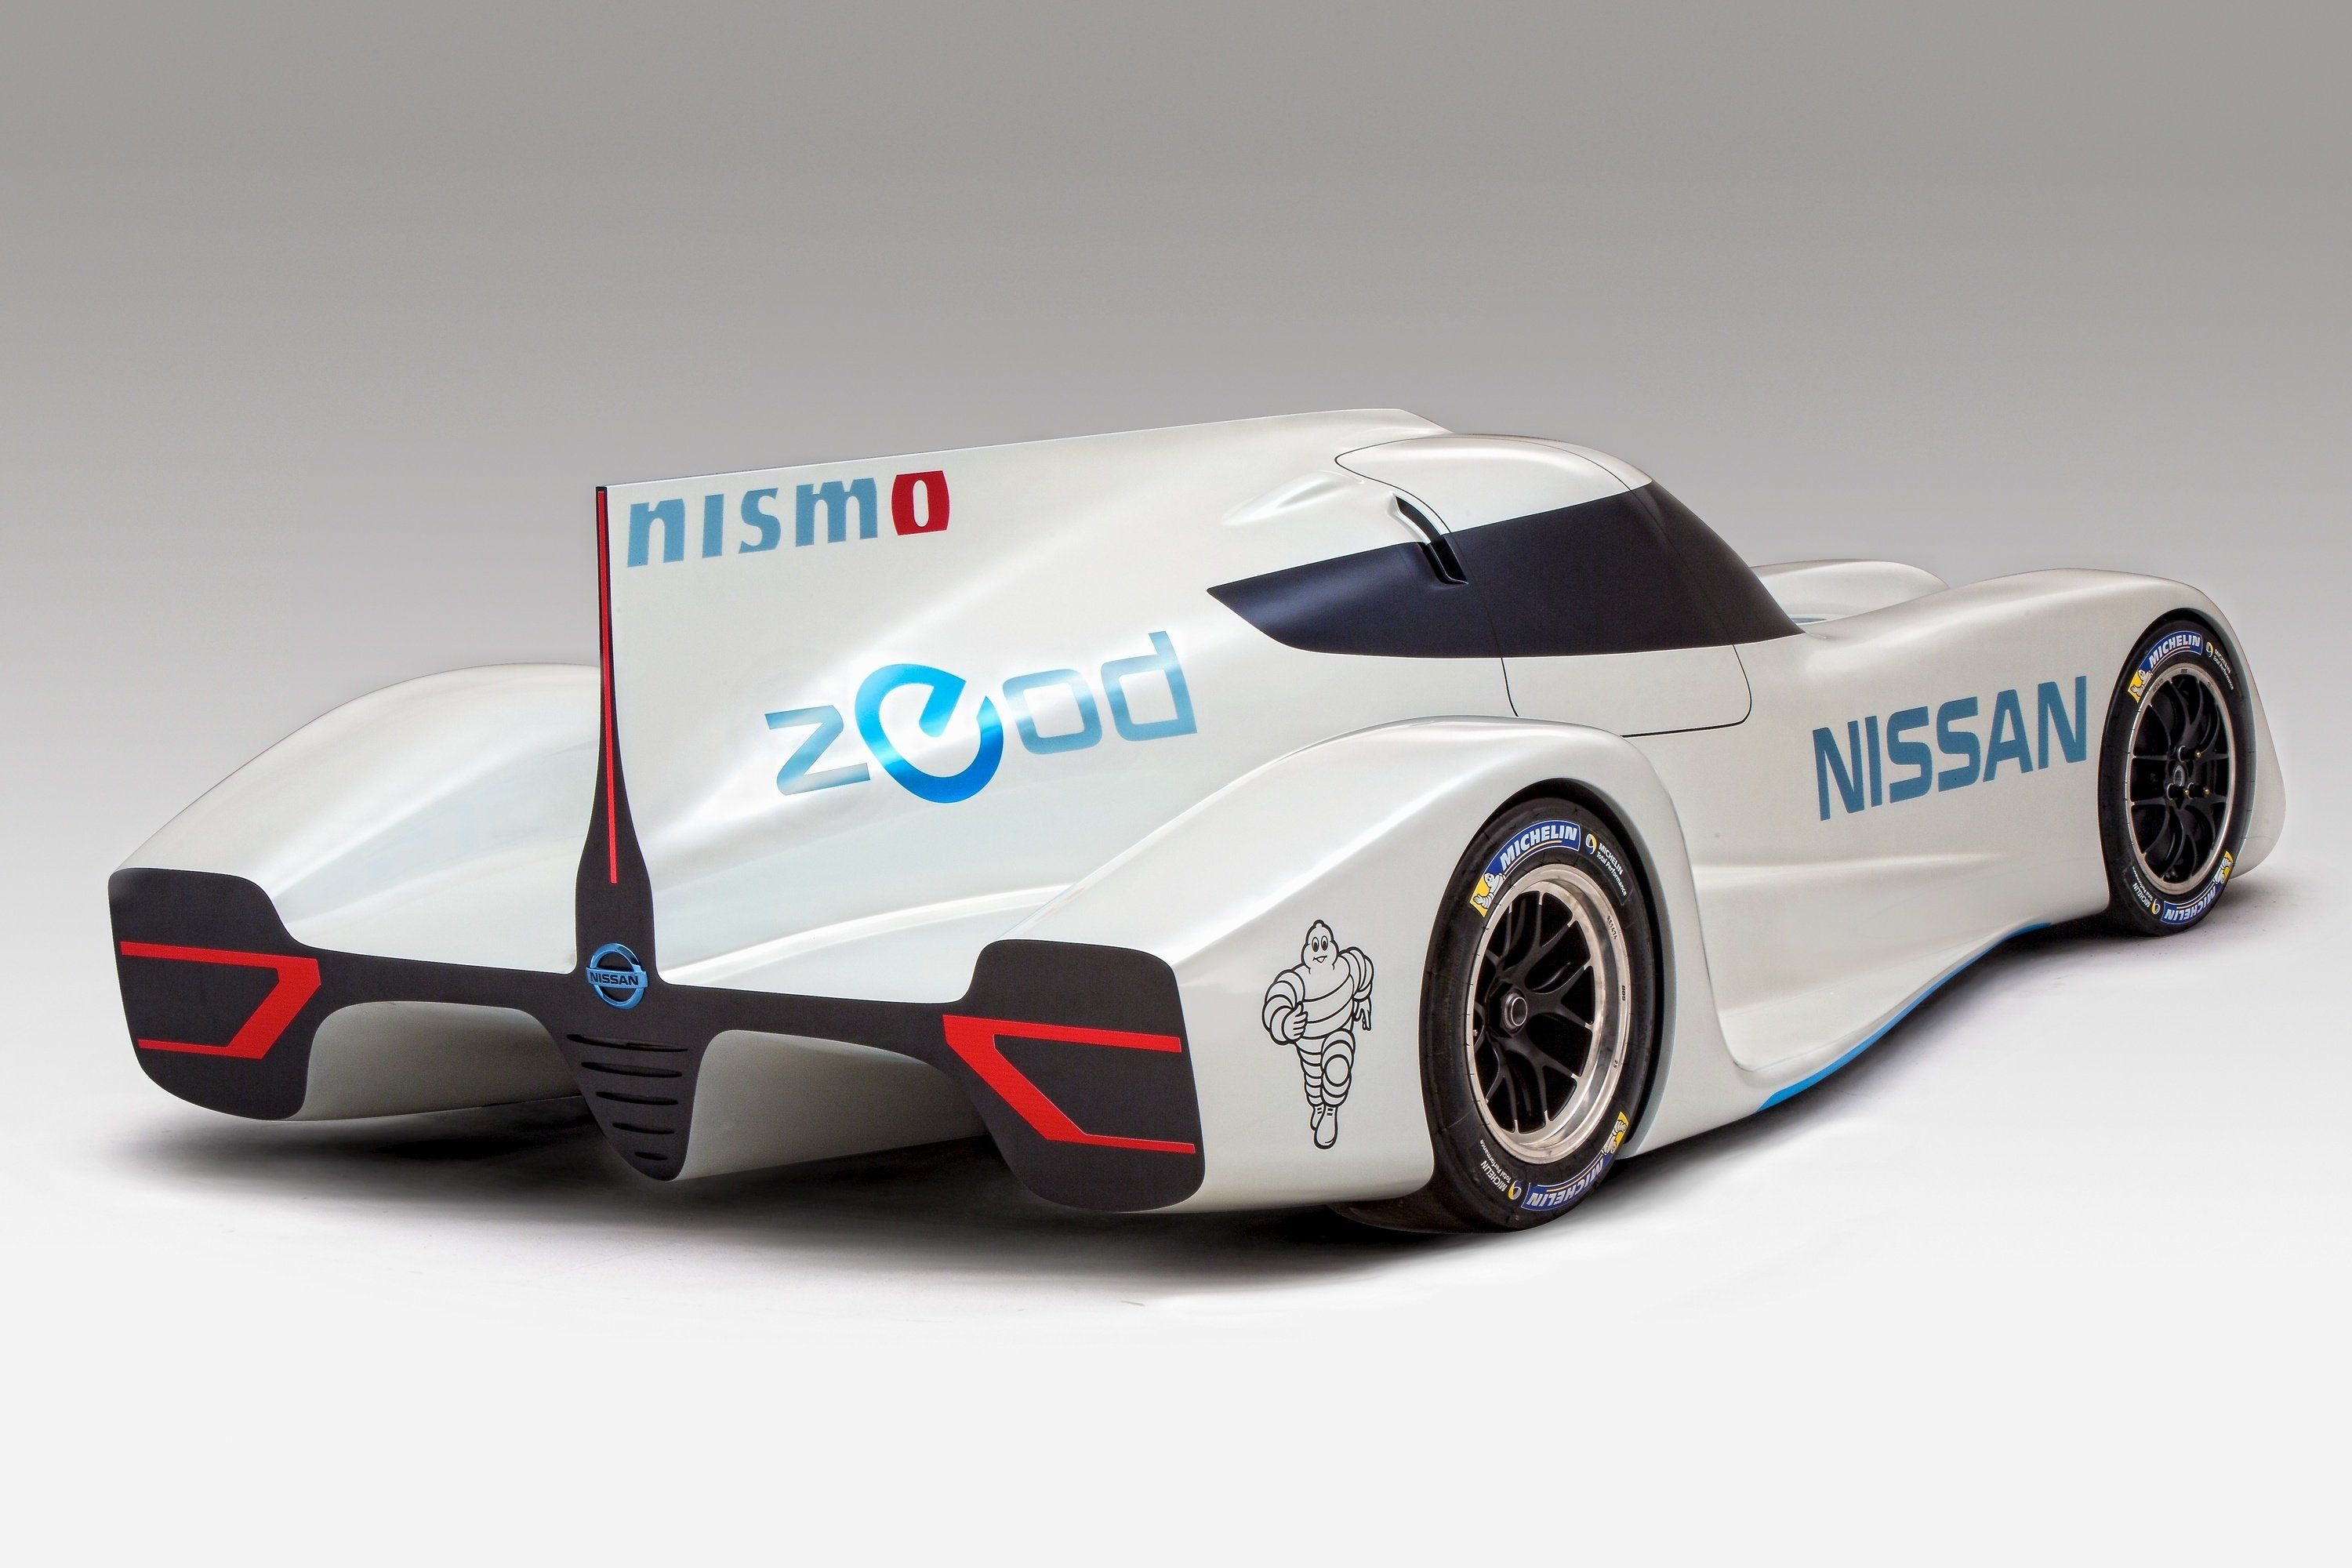 The World S Fastest Electric Racing Car Nissan Zeod Rc The